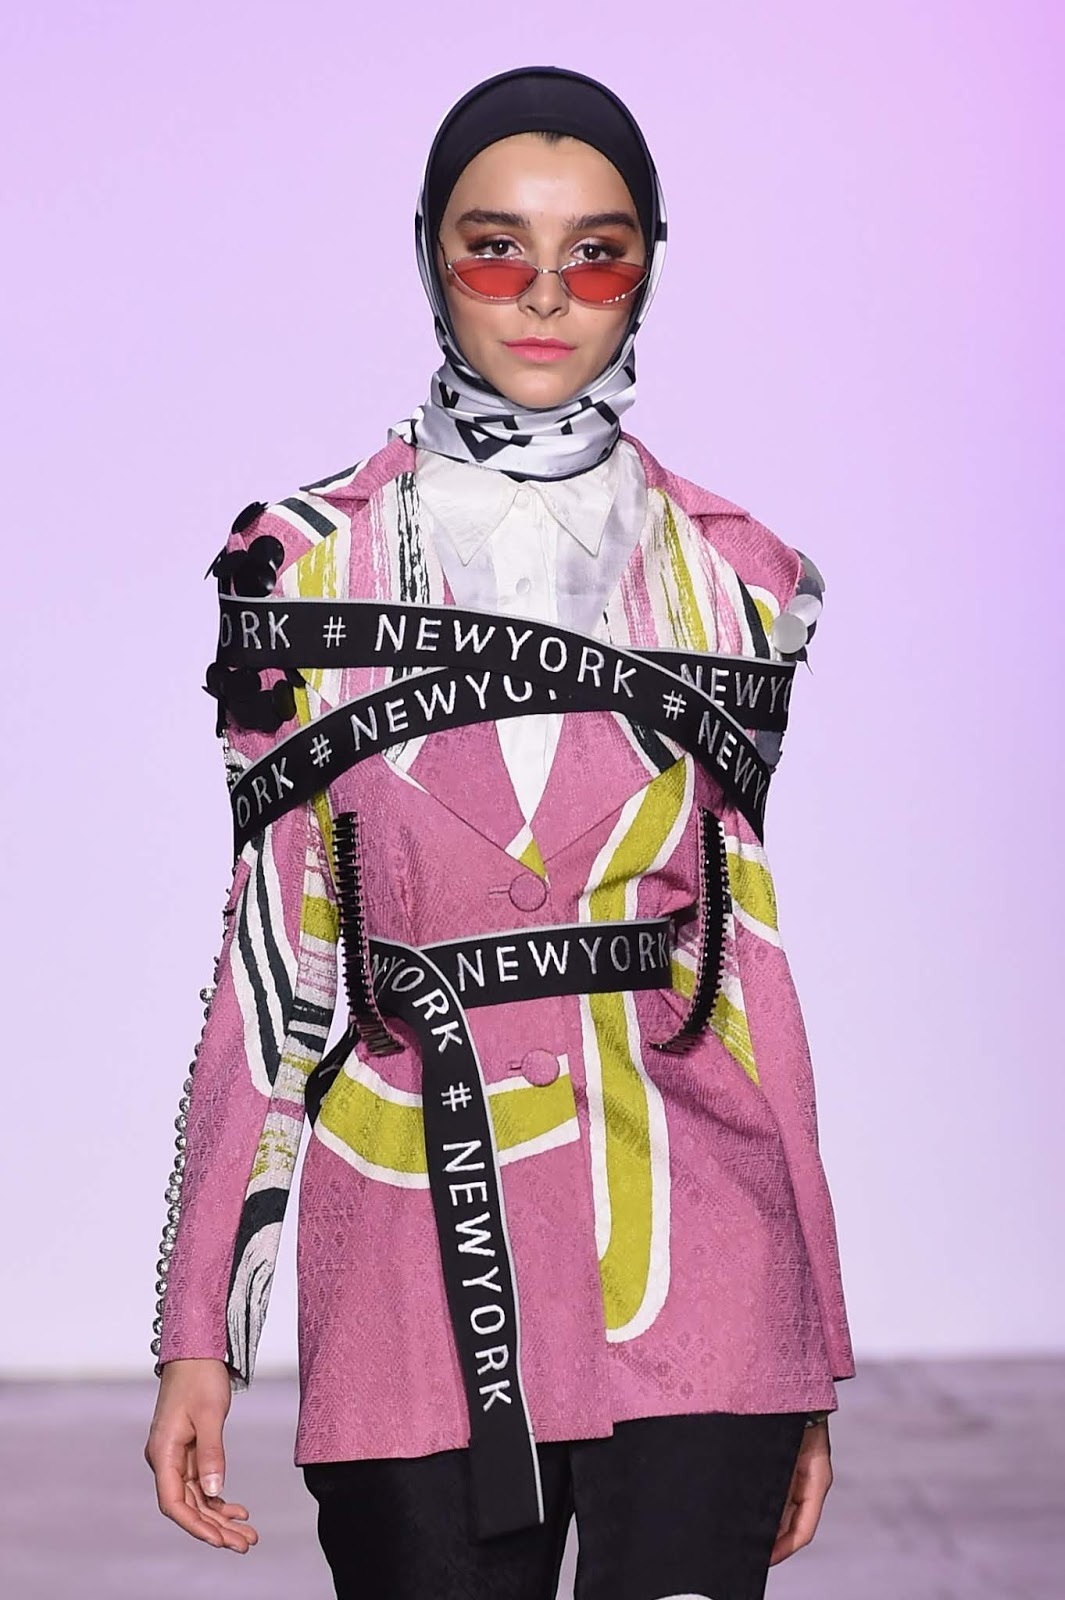 NYFW - INDONESIAN DIVERSITY - DAY 1 by Mari Estilo